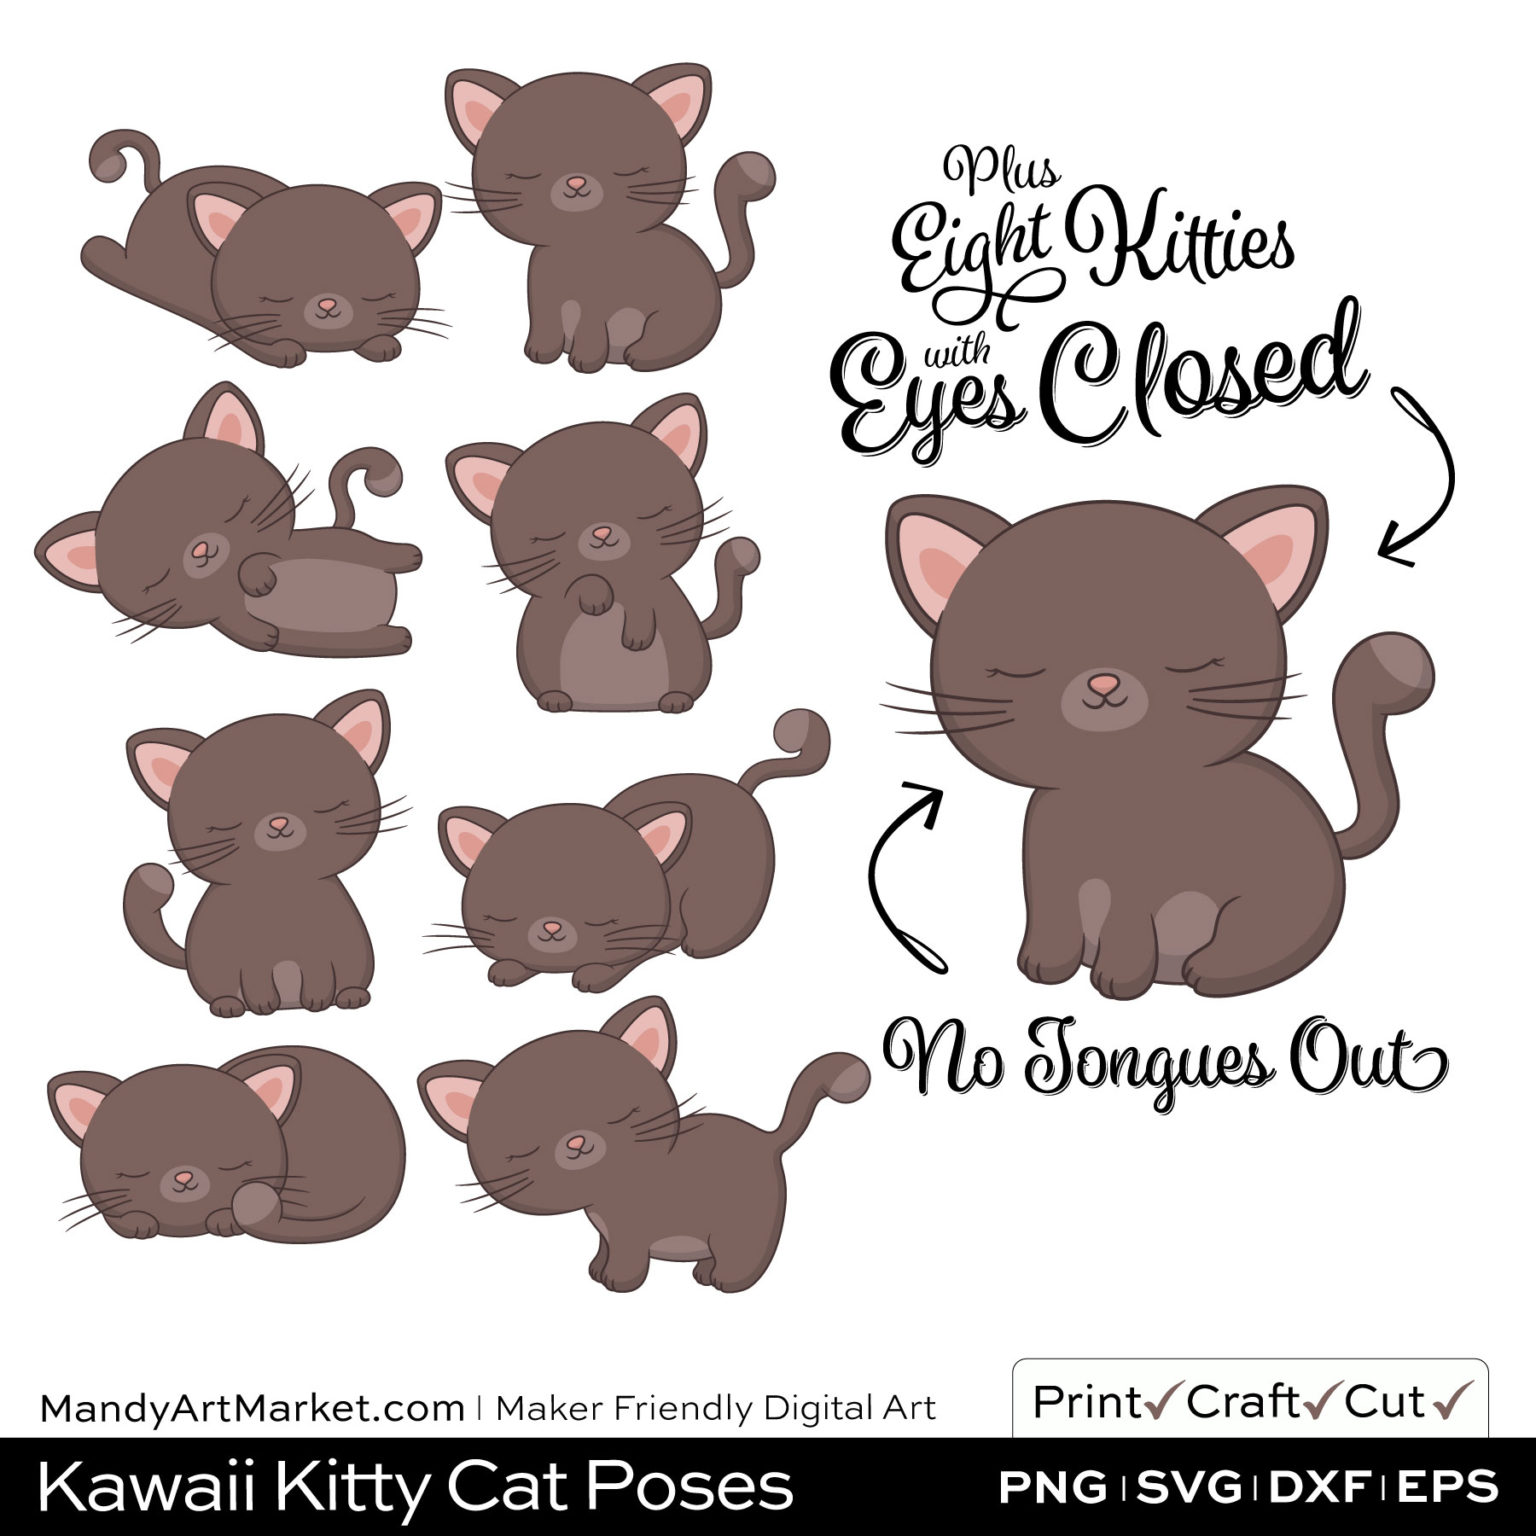 Cedar Brown Kawaii Kitty Cat Poses Clipart PNGs Included in Download